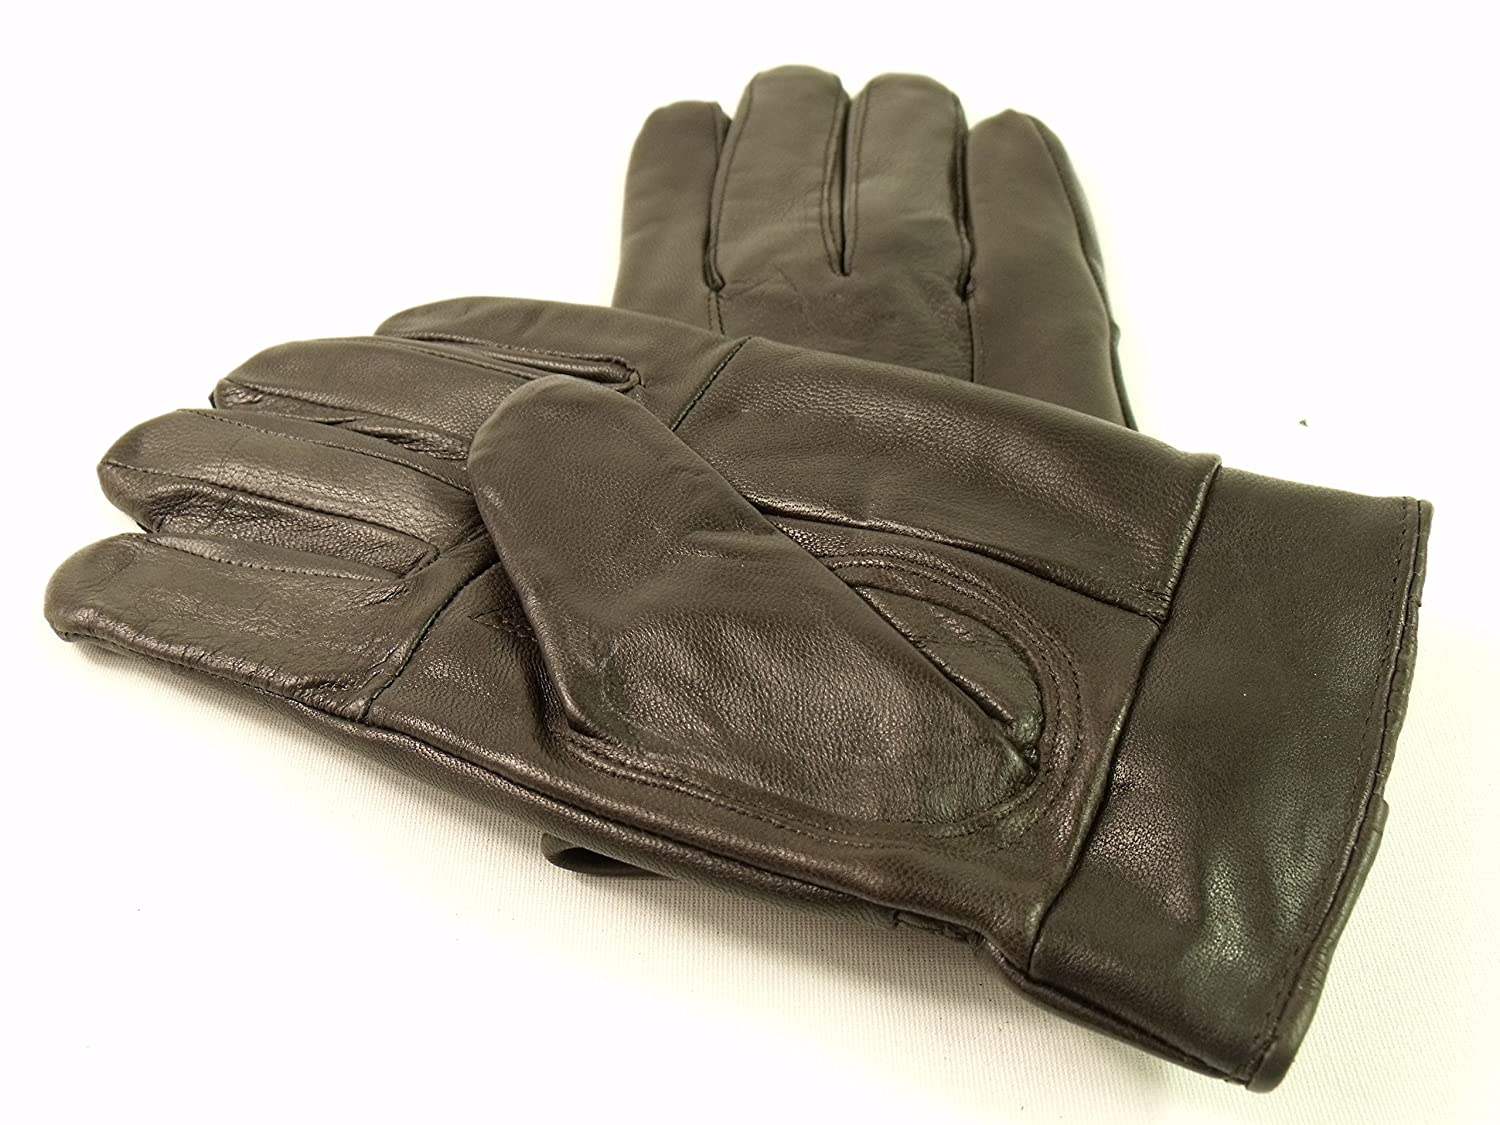 Ladies leather gloves australia - Ladies New Soft Leather Fully Lined Gloves By Lorenz 8910 Small Brown Amazon Co Uk Clothing